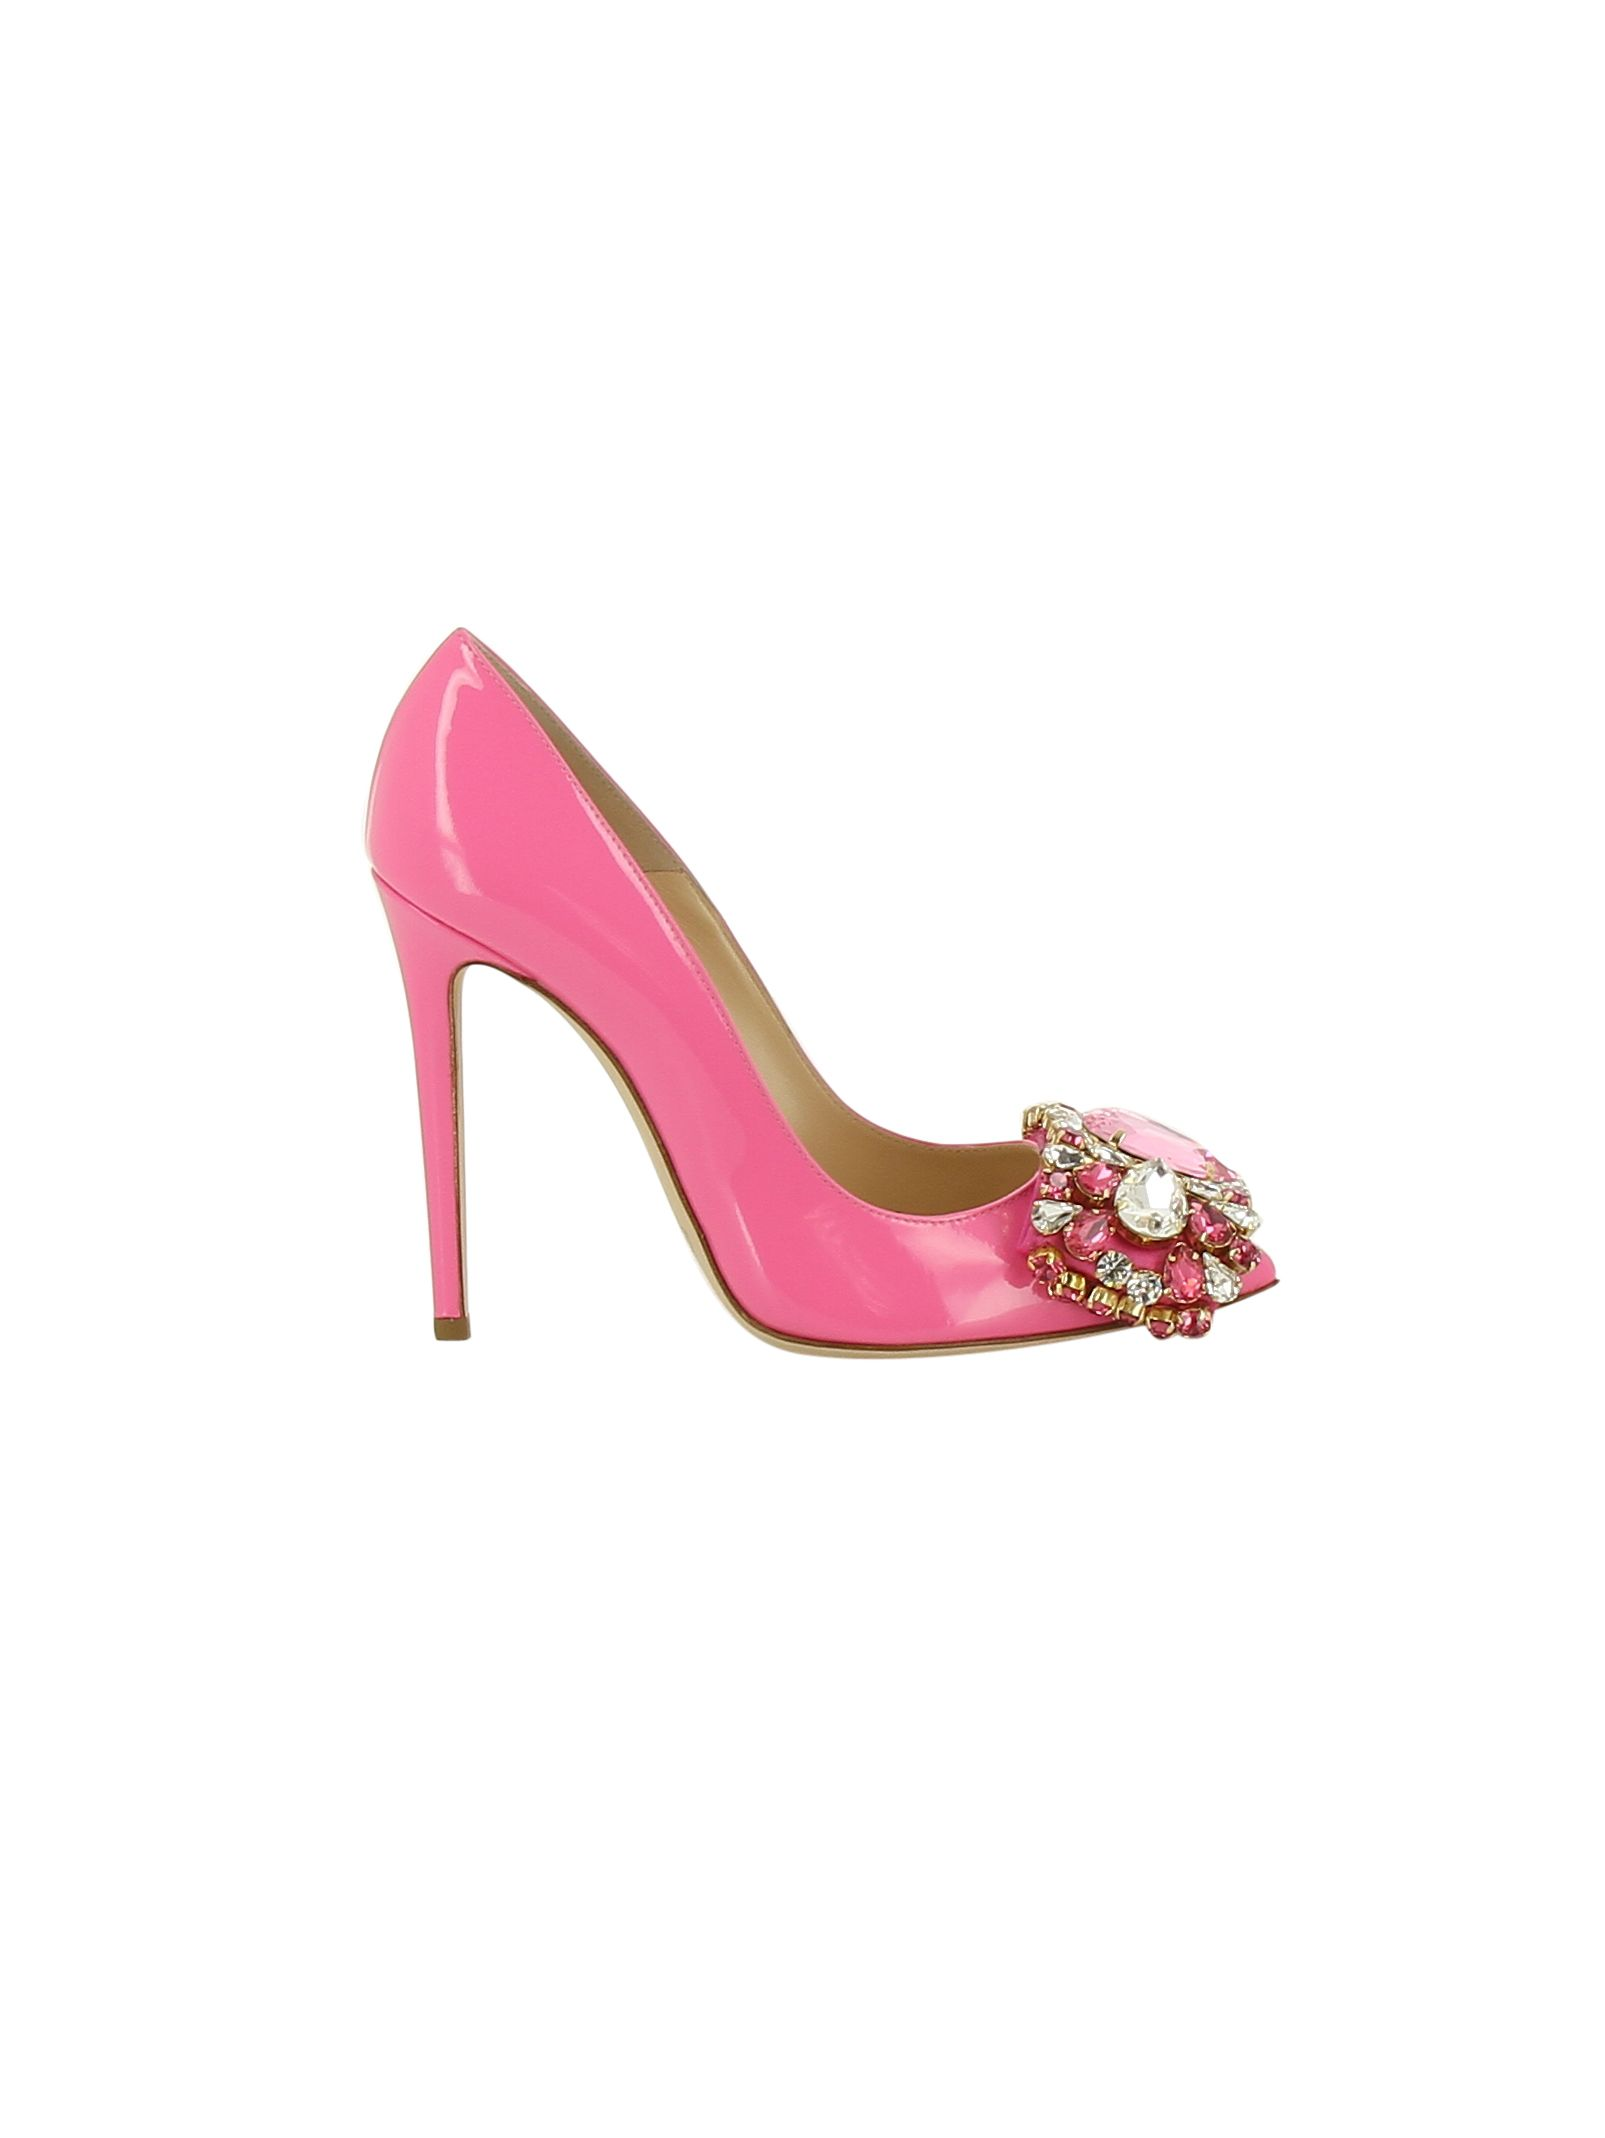 Gedebe Veronique Vernice Pumps